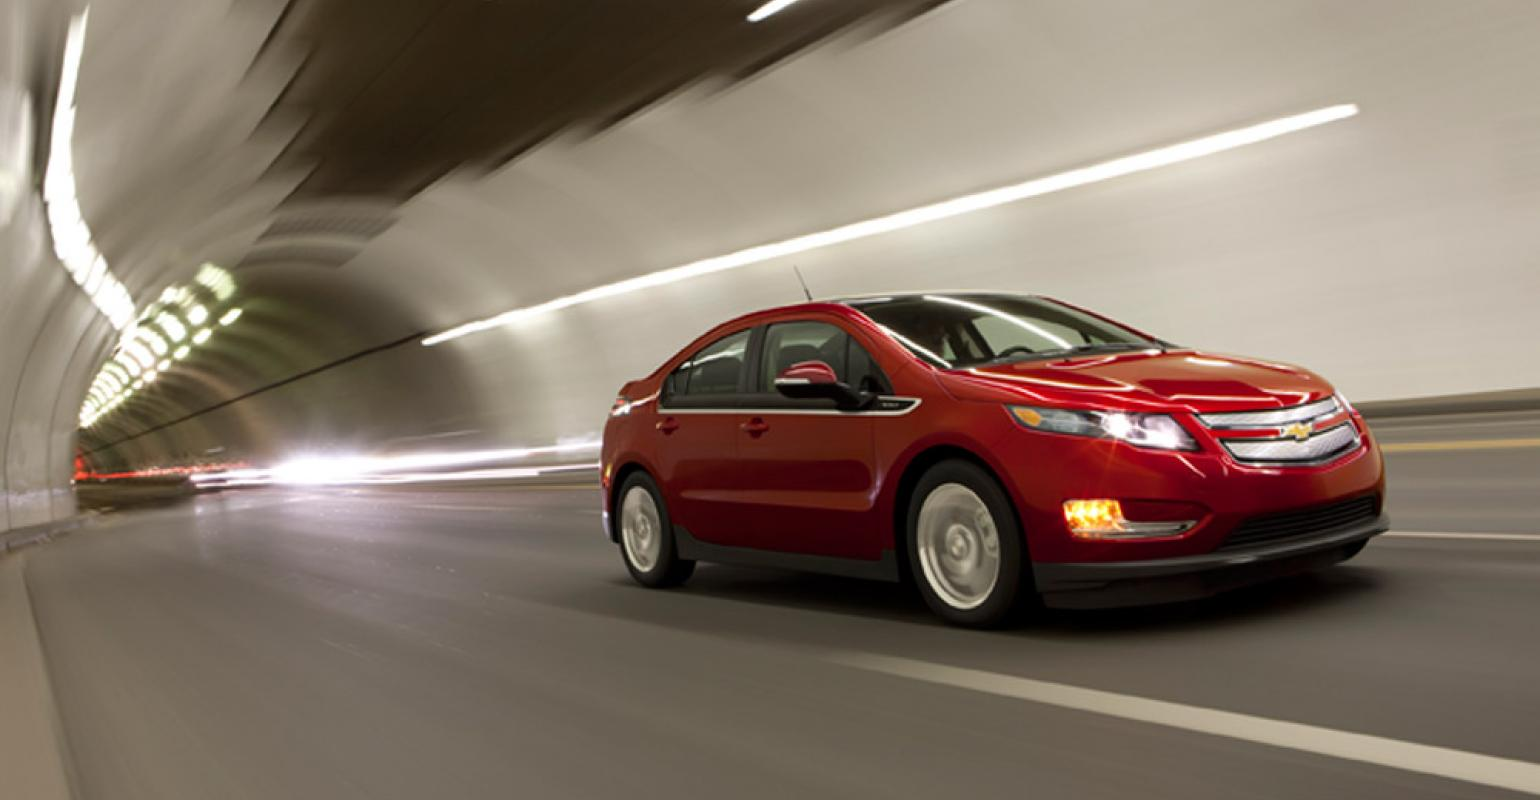 Volt S Bouncing Back From Negative Press New Marketing Program Helping Gm Executive Says